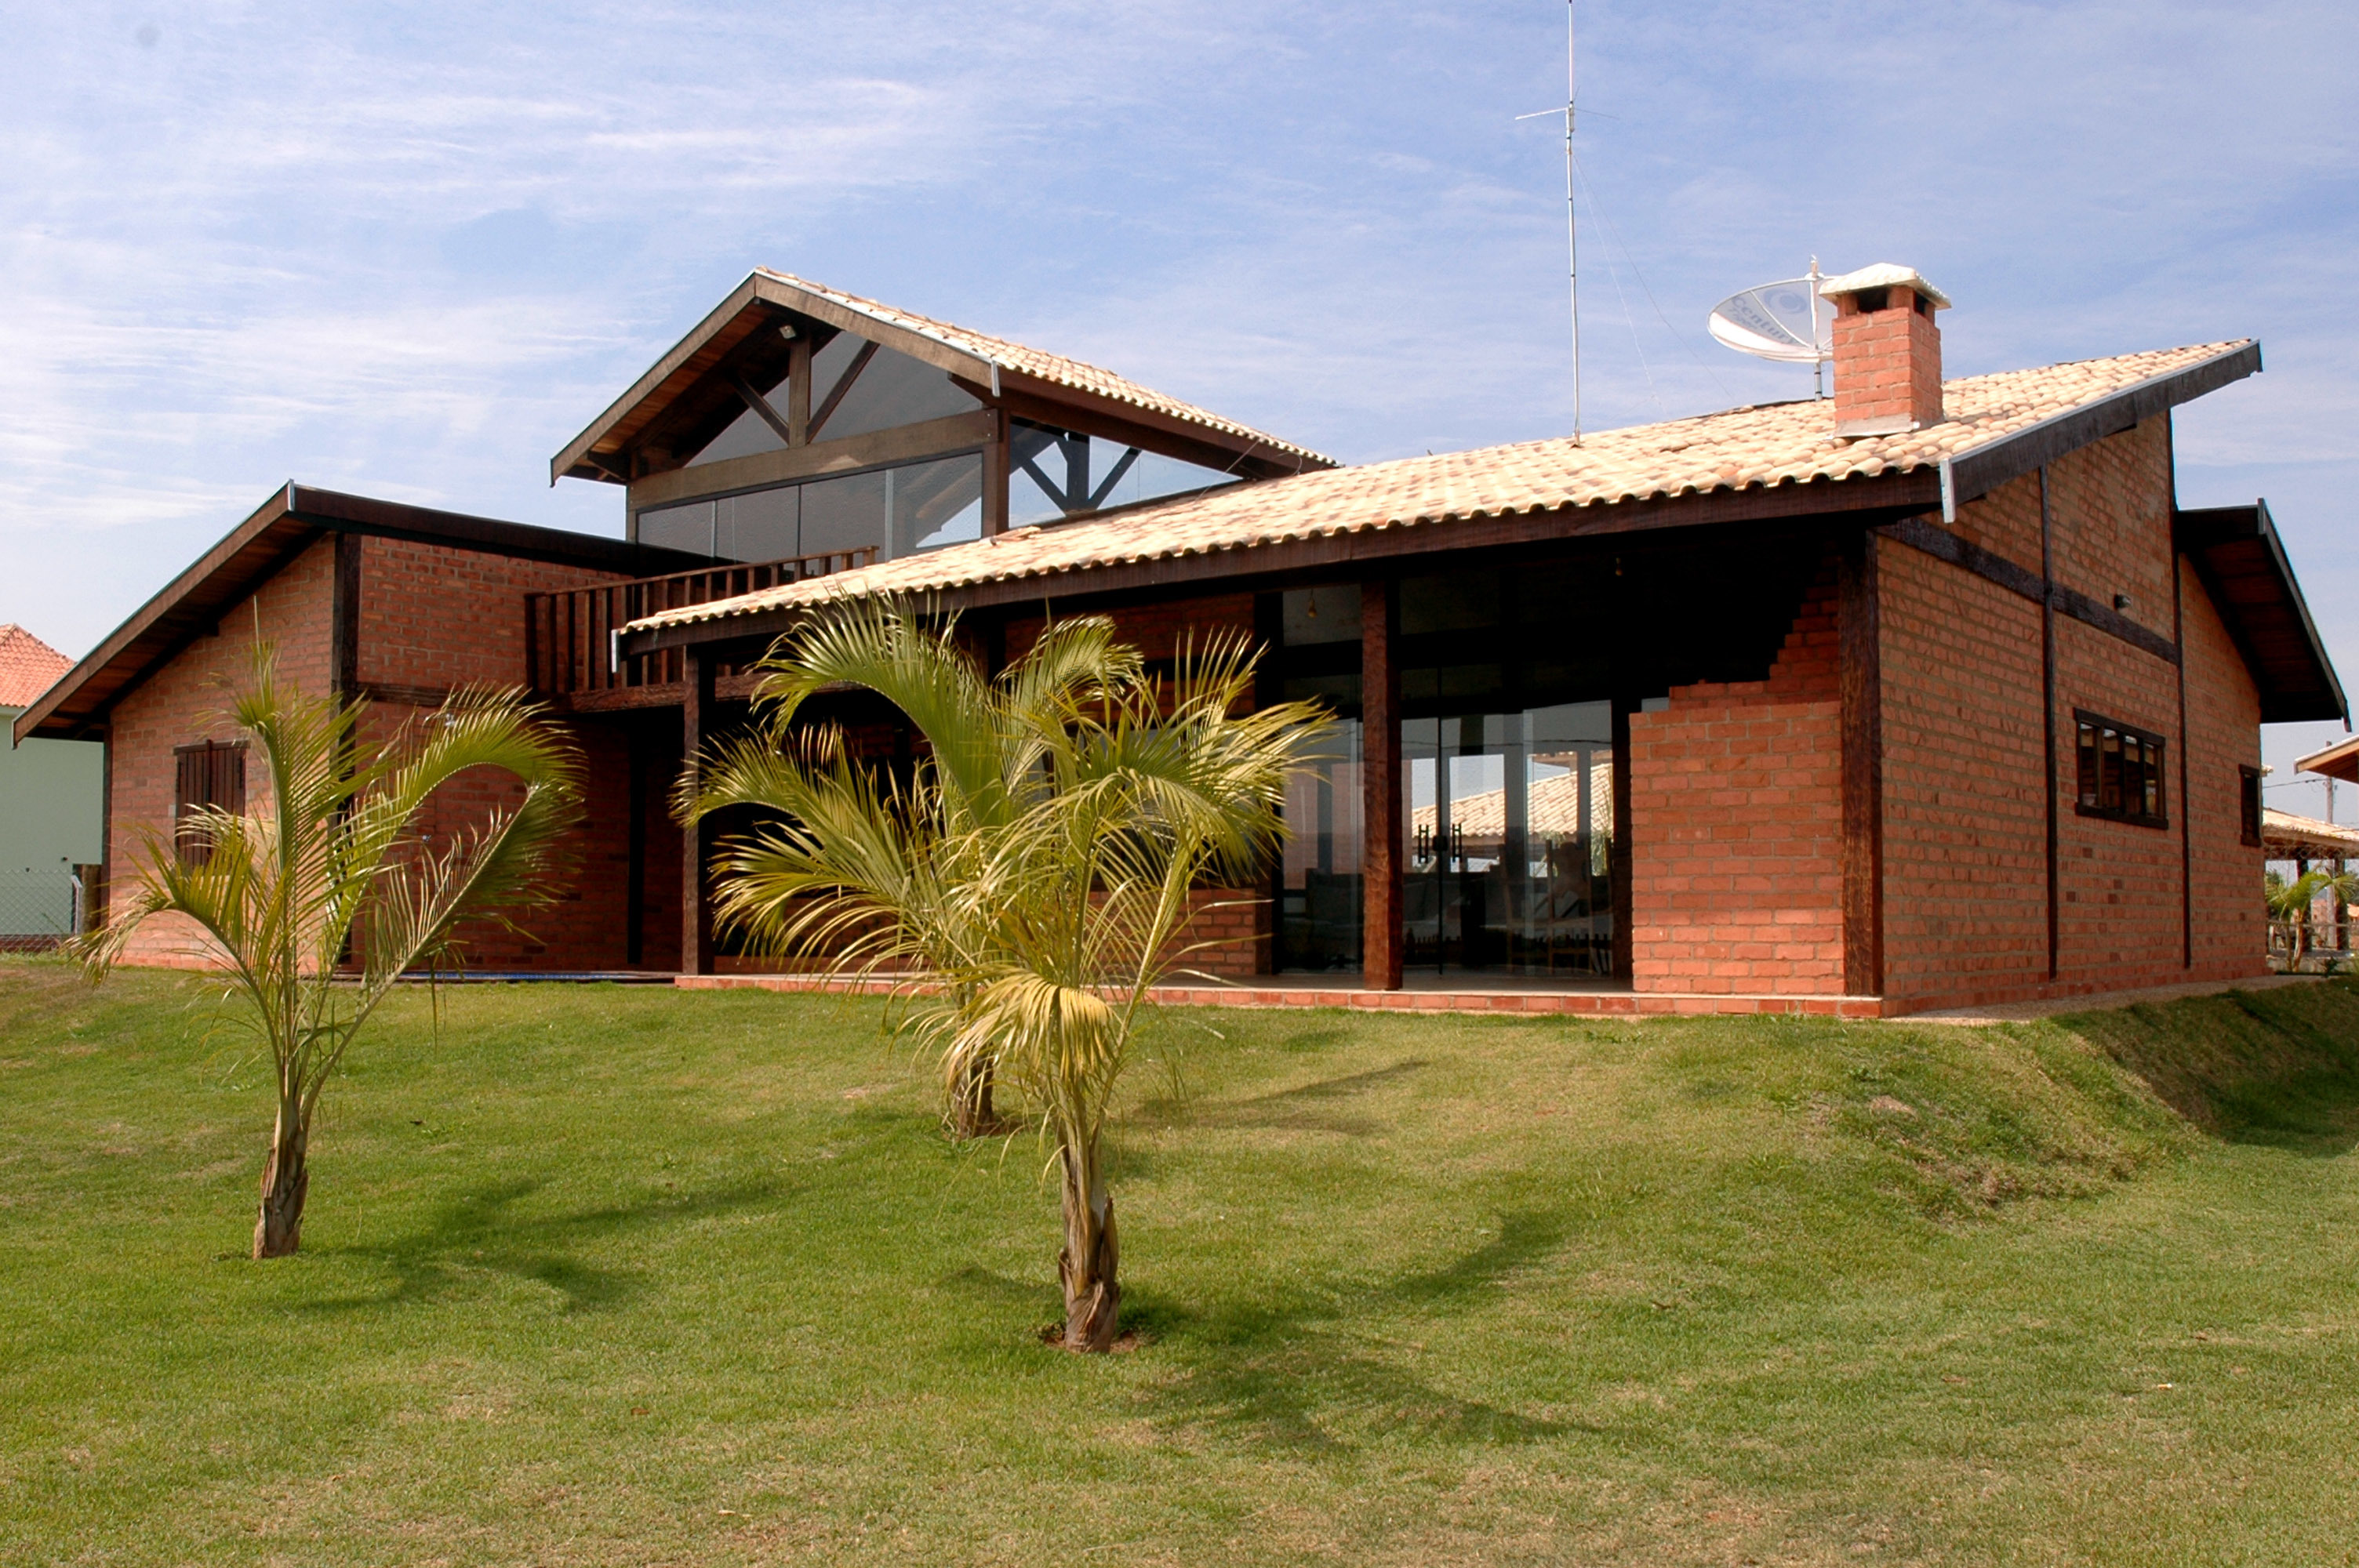 Keep Your Holiday Home in Tip-Top Condition